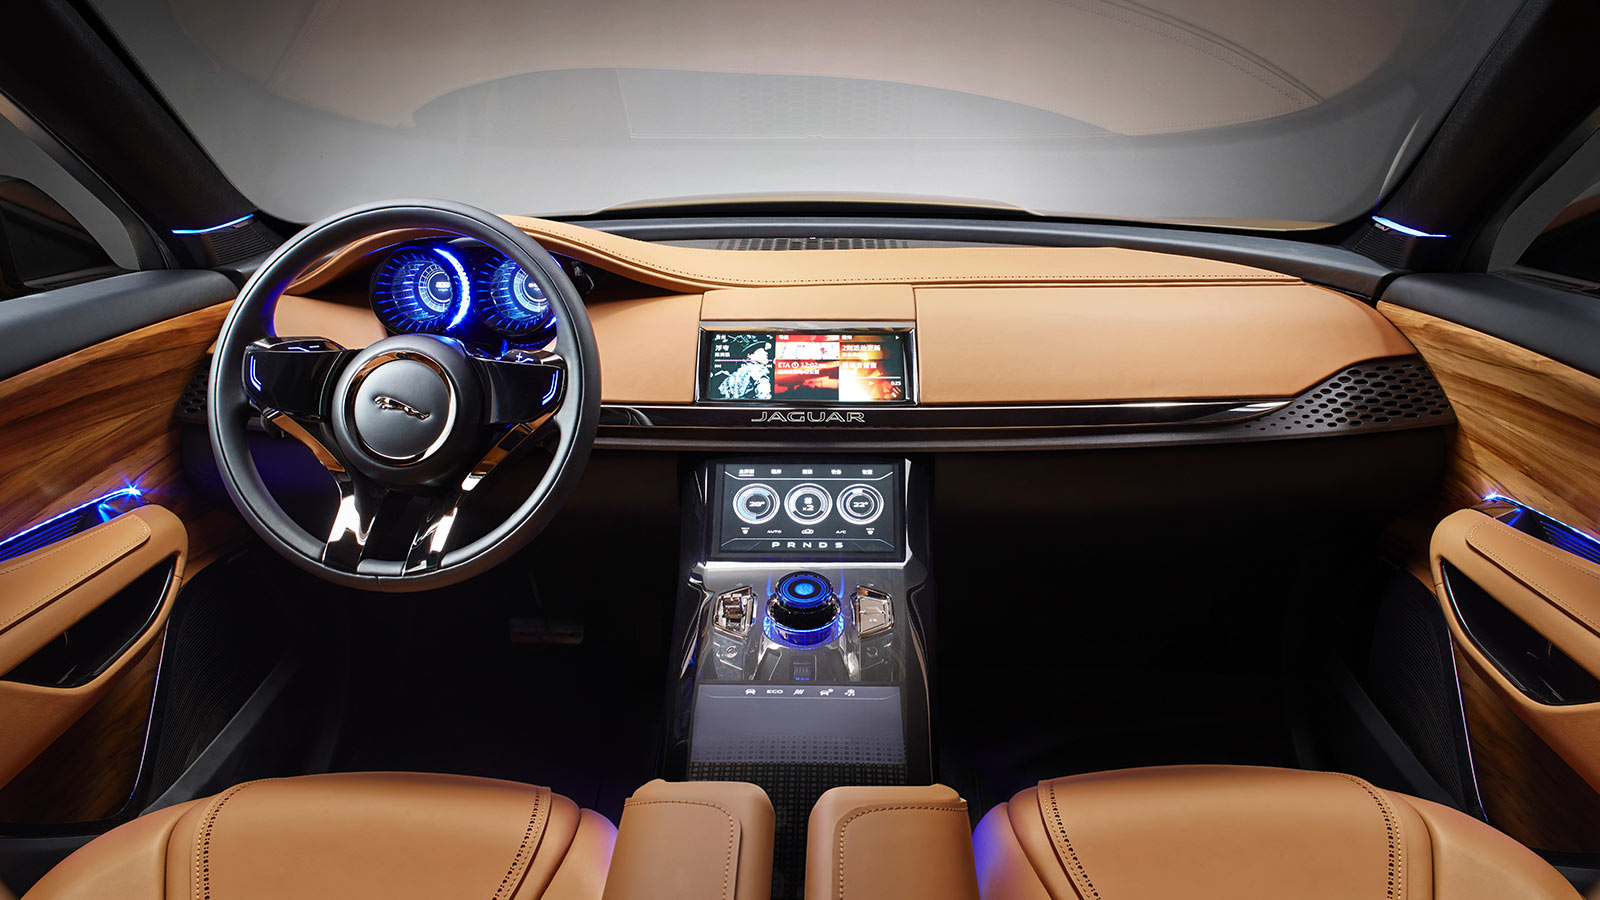 Jaguar CX-17 Interior.